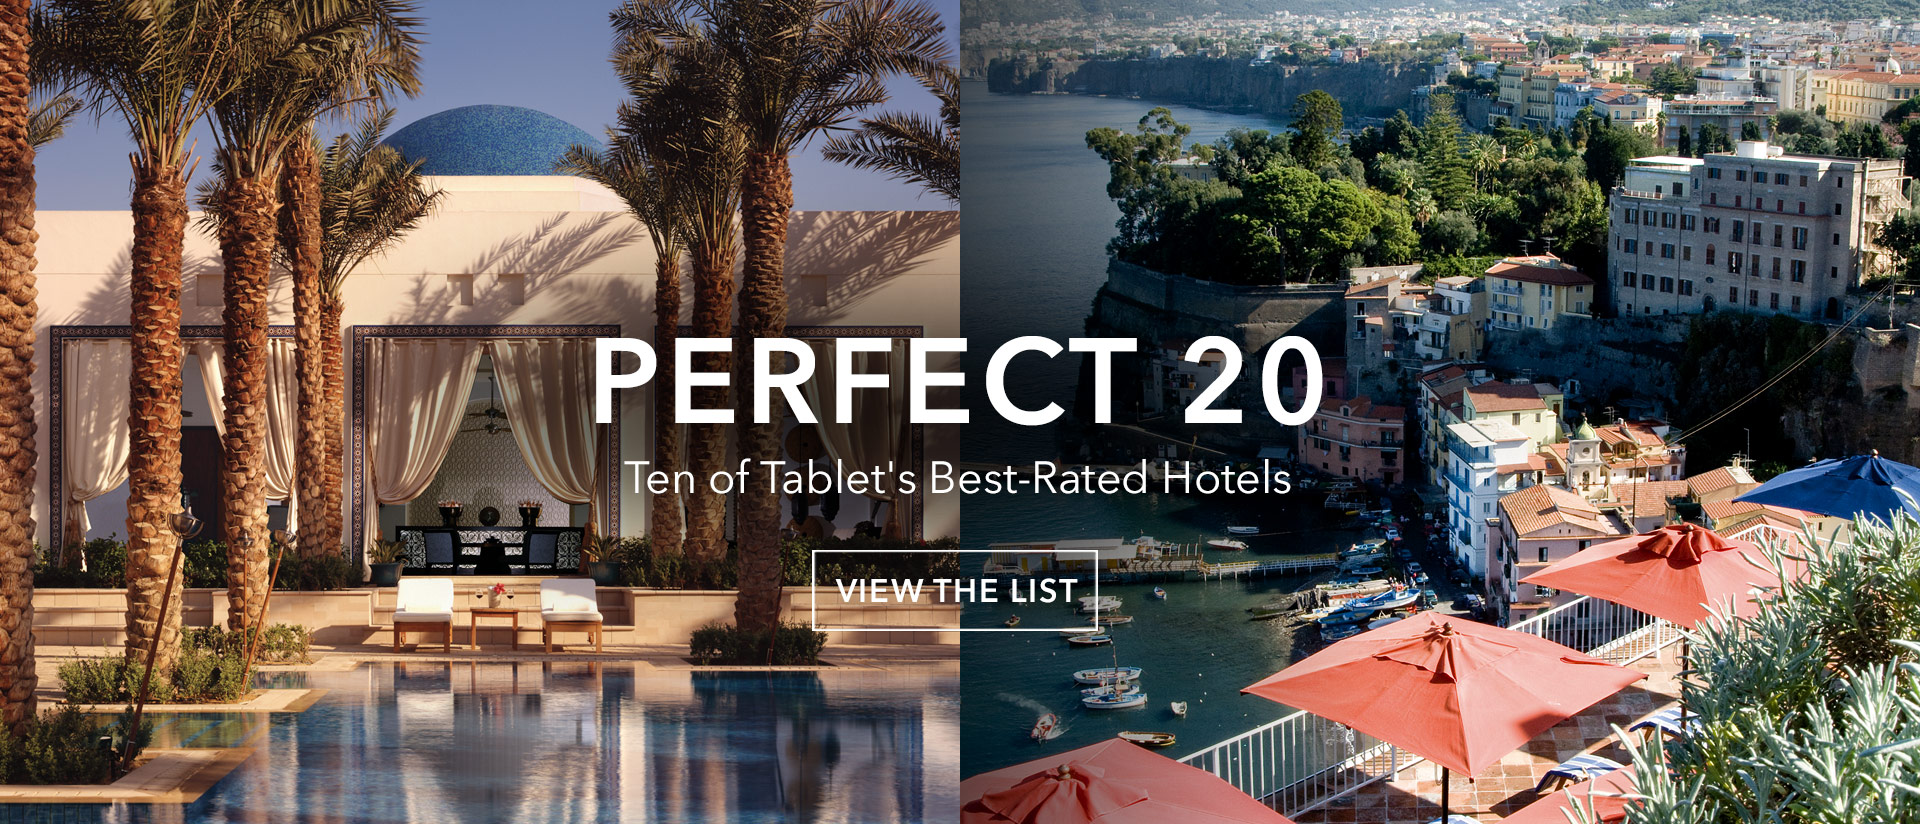 Ten of Tablet's Best-Rated Hotels